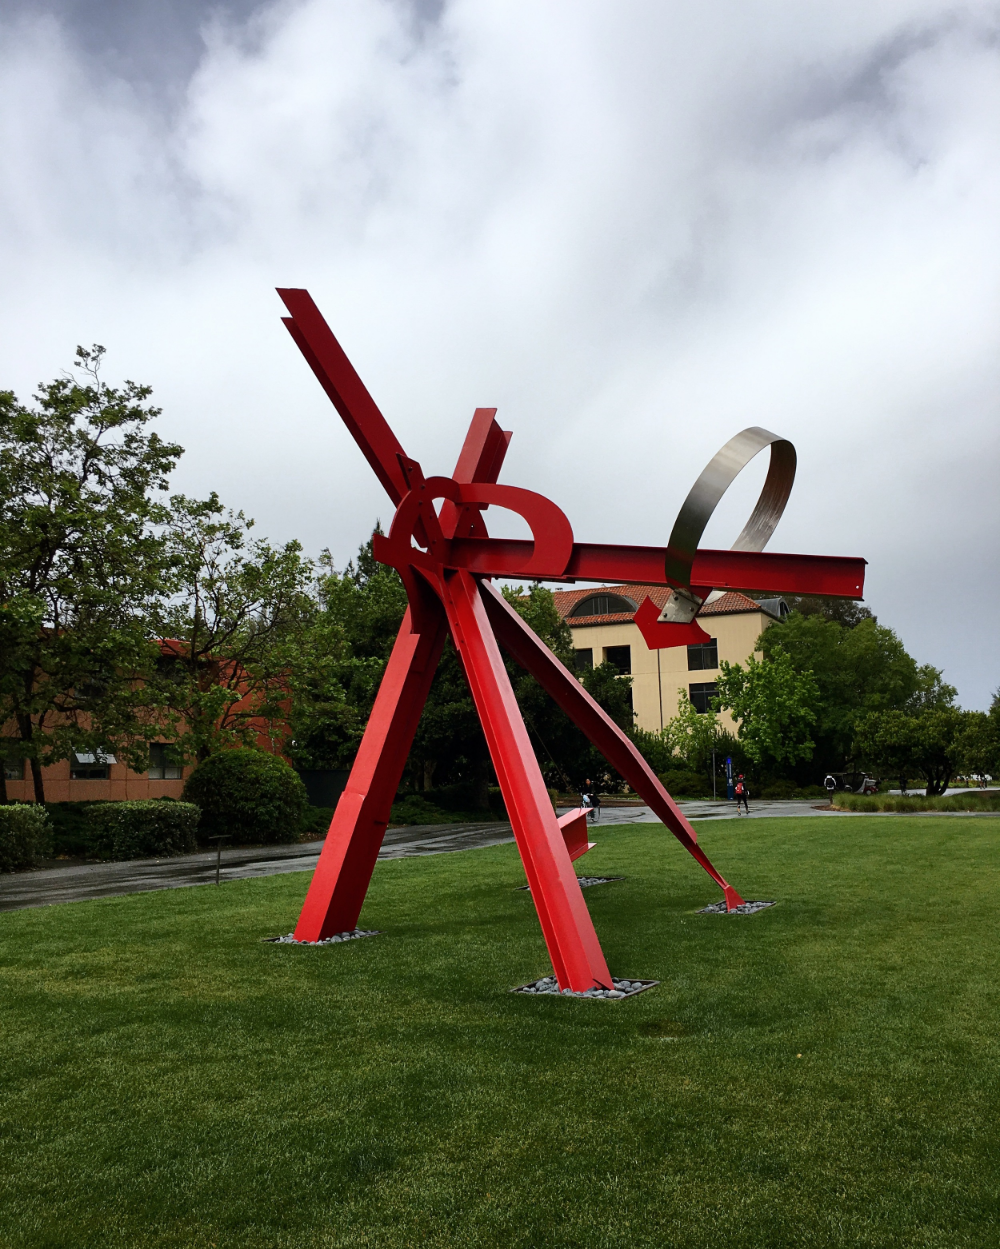 This was on Stanford campus. It's very similar to a  sculpture  outside one of the engineering buildings of the college I went to. Fun fact: my dad went to Stanford. He's a lot smarter than me.